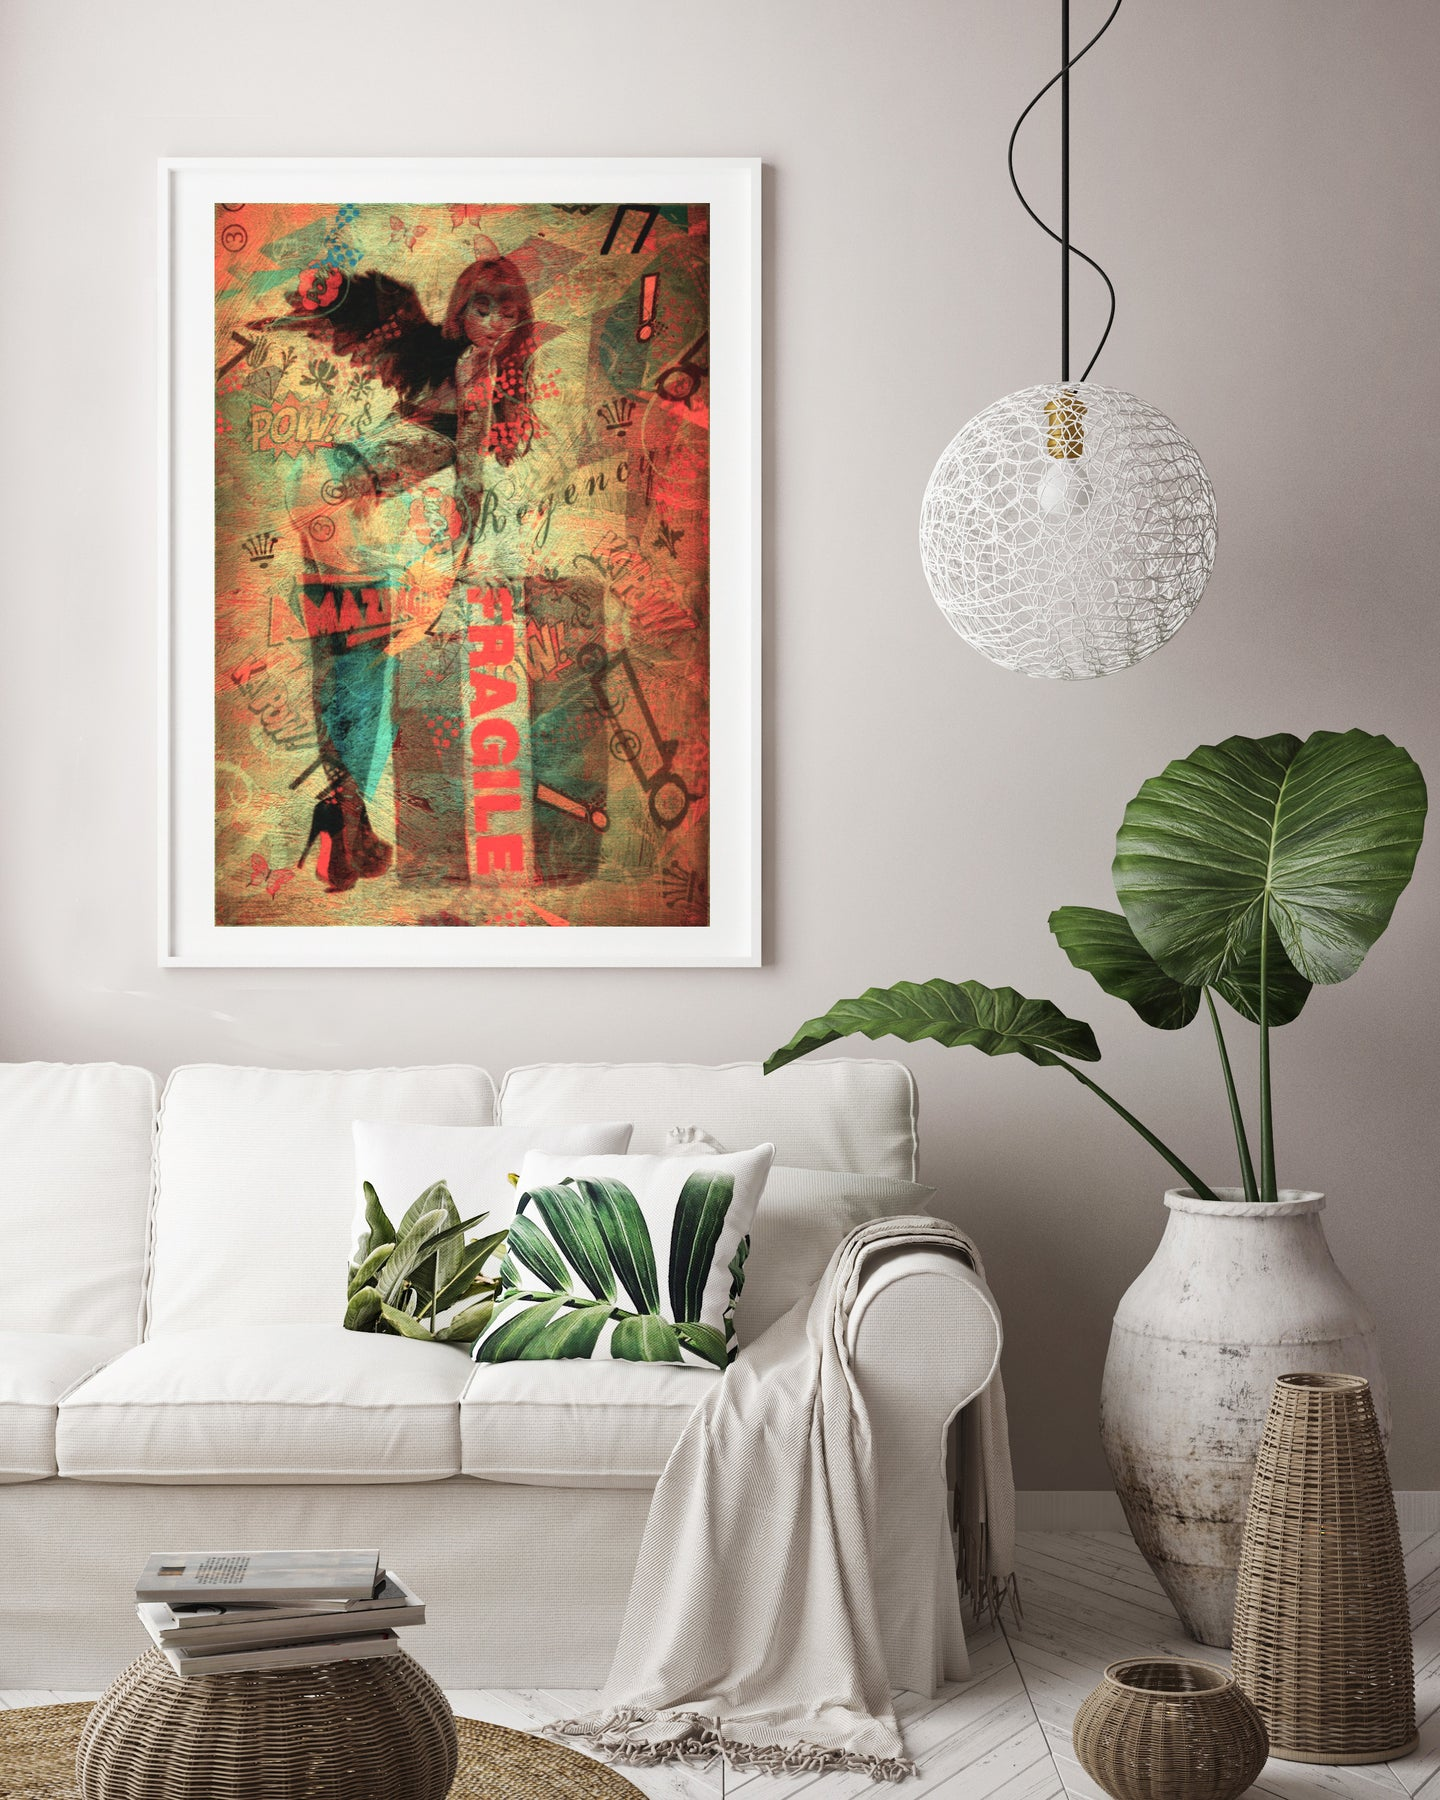 Fragile angel street art print